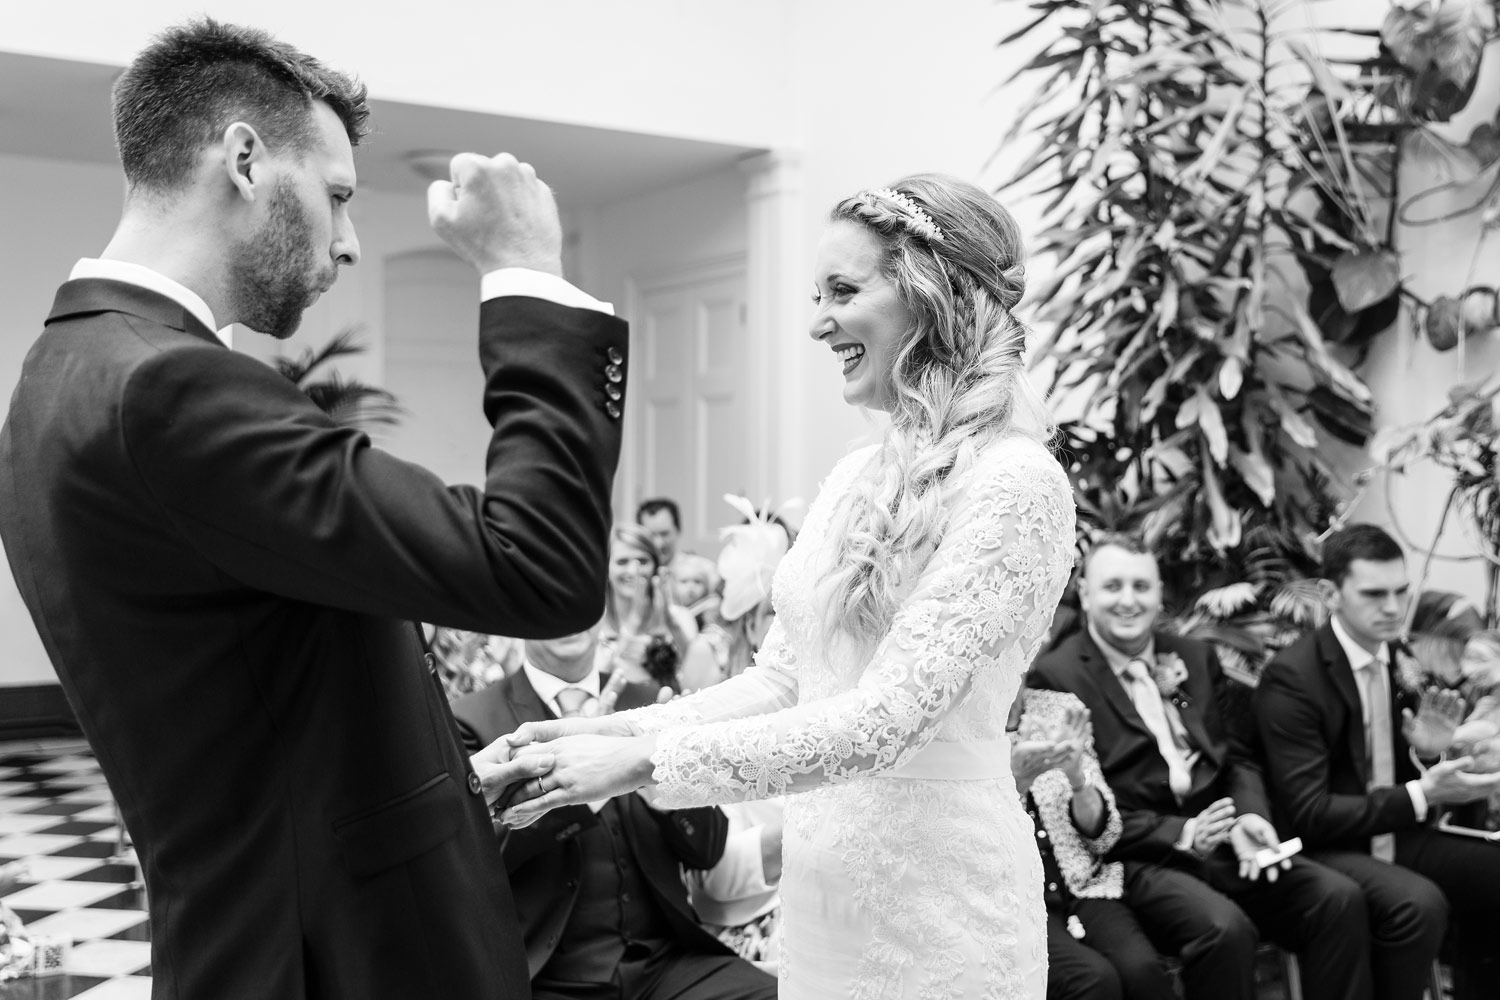 A groom punches the air during his wedding ceremony at York House in Twickenham, London.